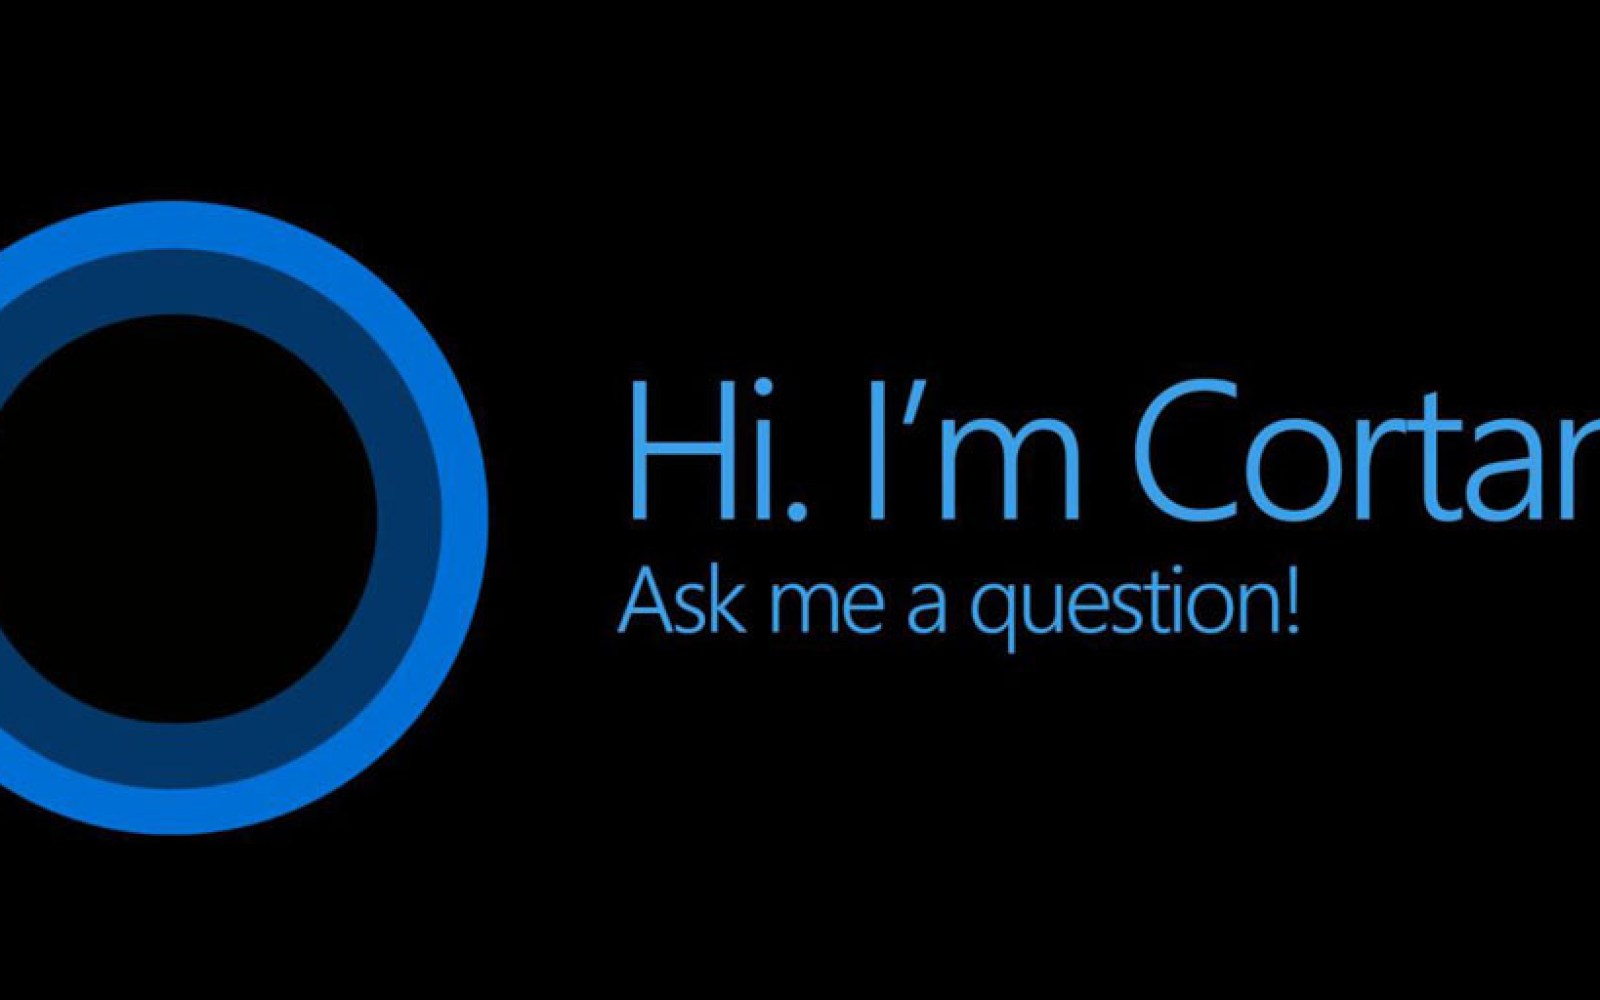 Cortana Android app will soon let Windows 10 mirror your phone's notifications